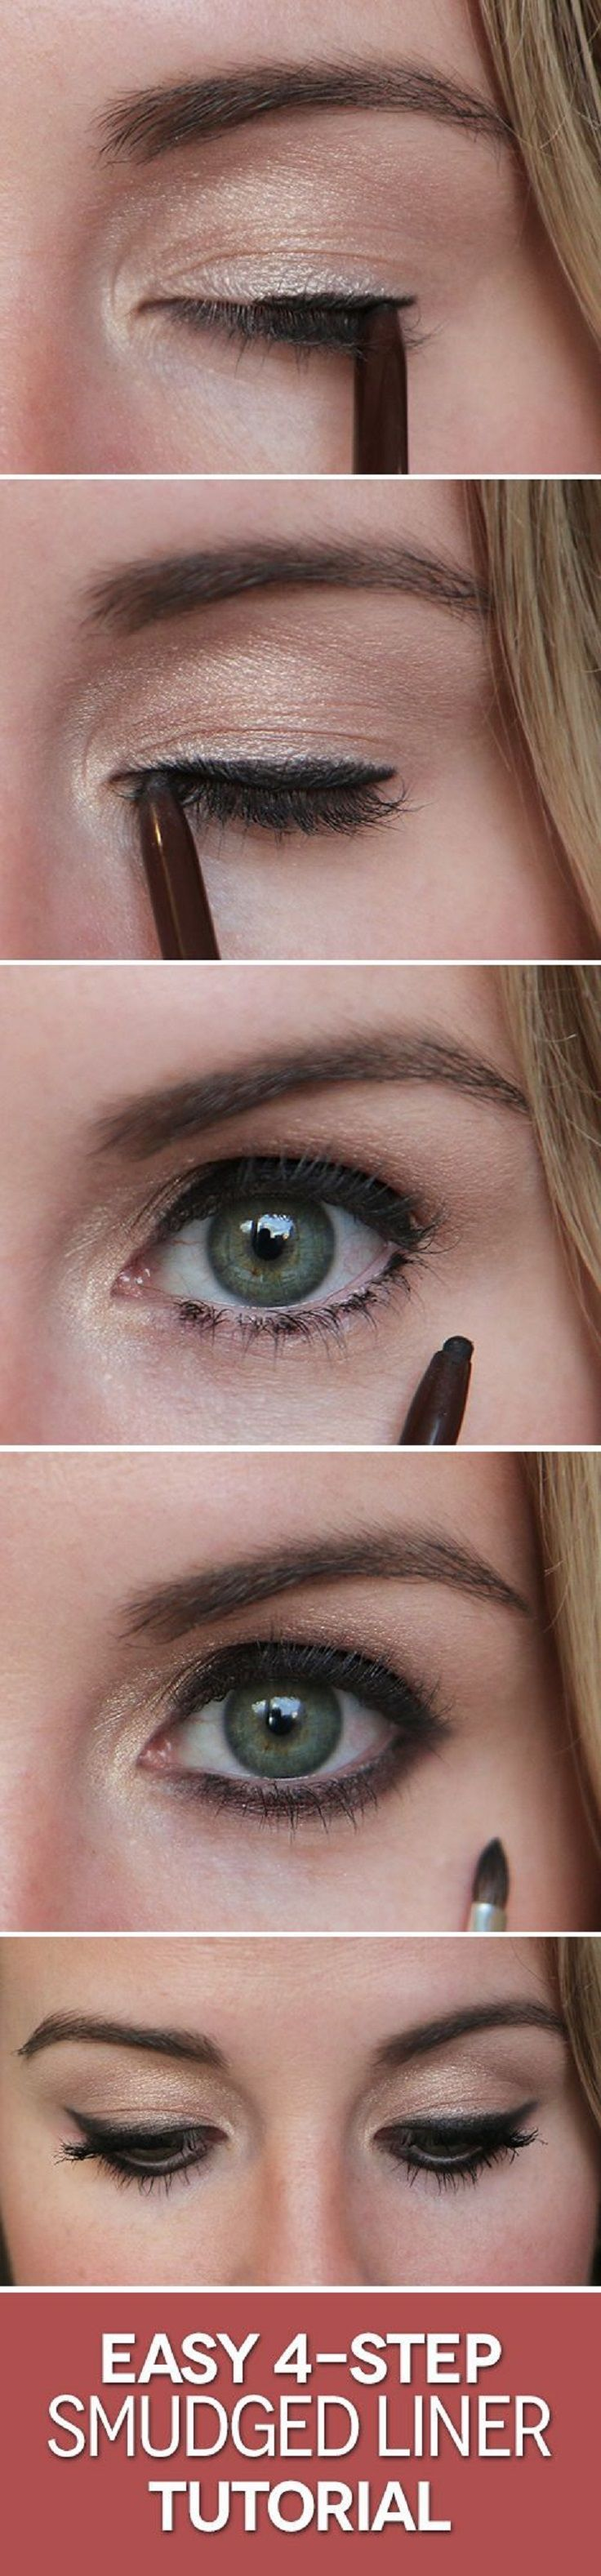 Top 10 Smudged Eyeliner Makeup Tutorials Fashion Collection